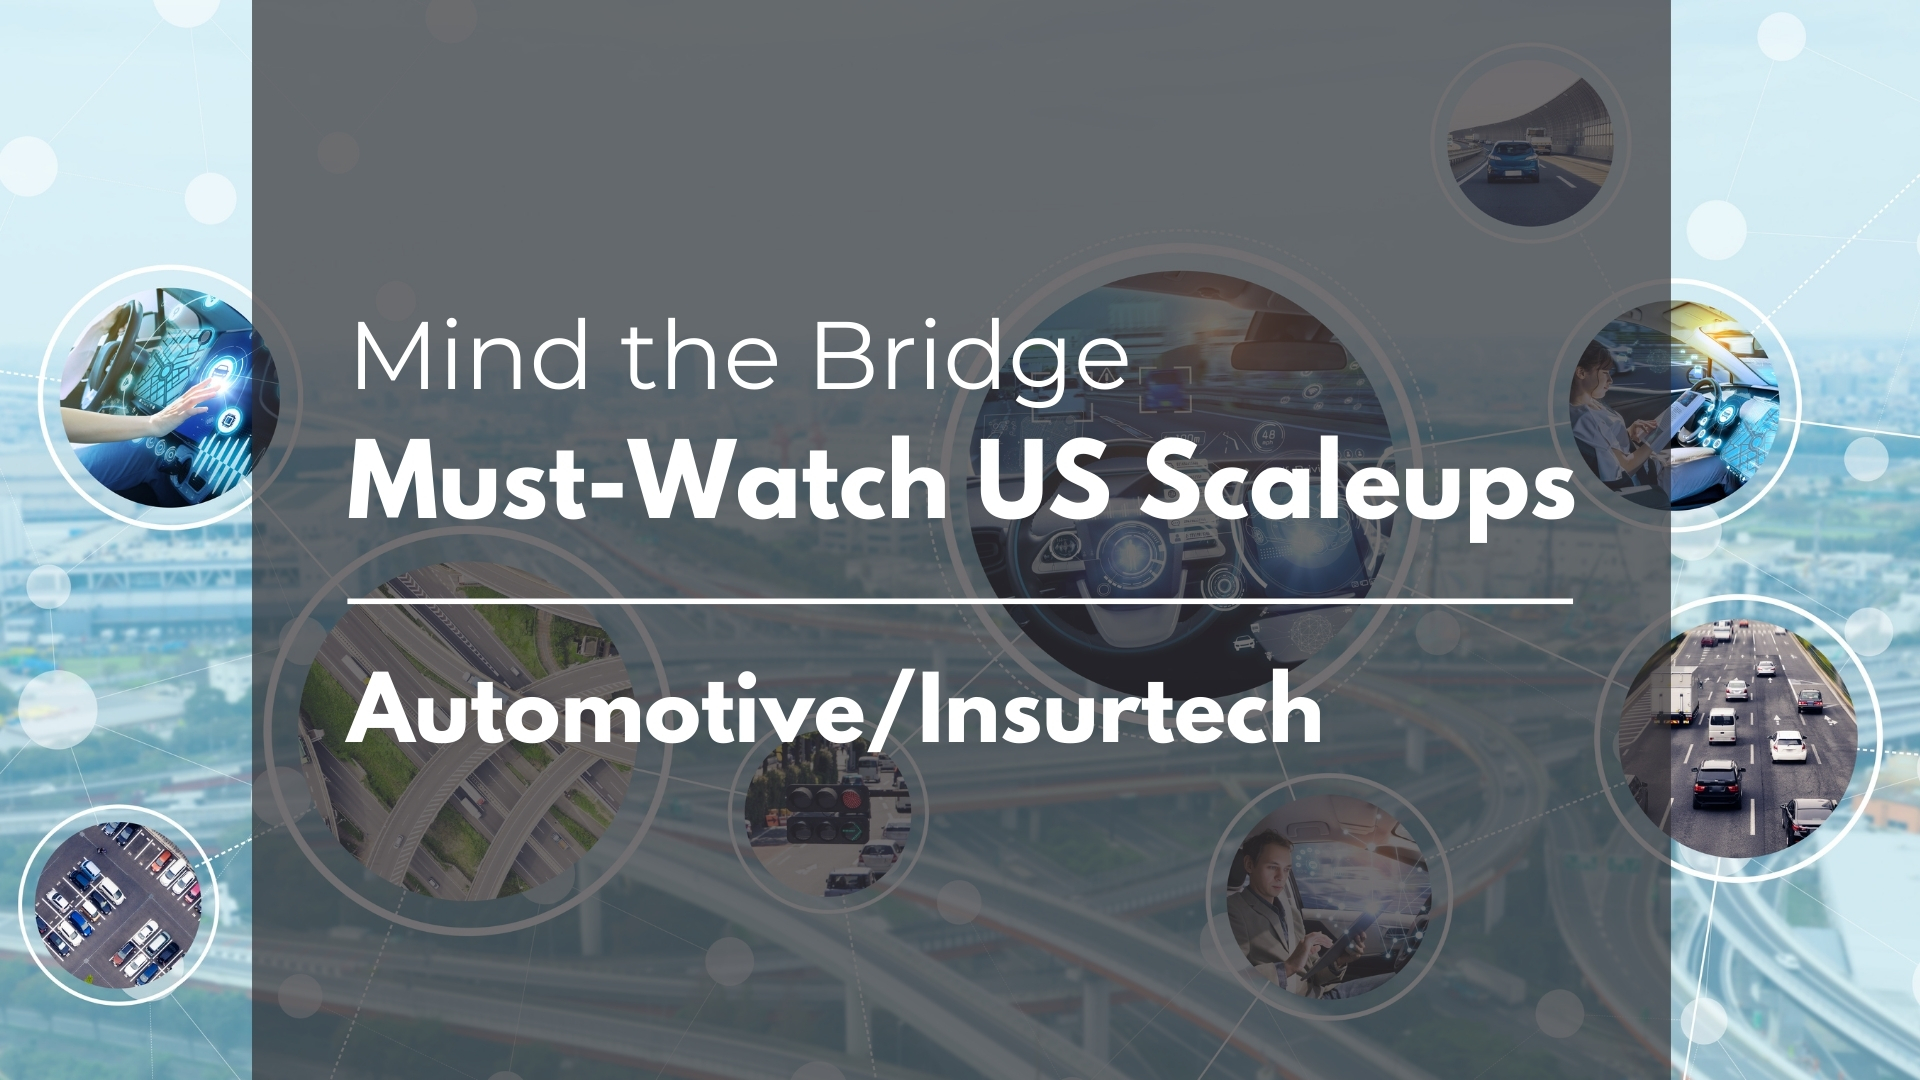 8 World-Changing Automotive Insurtech Startups in the US